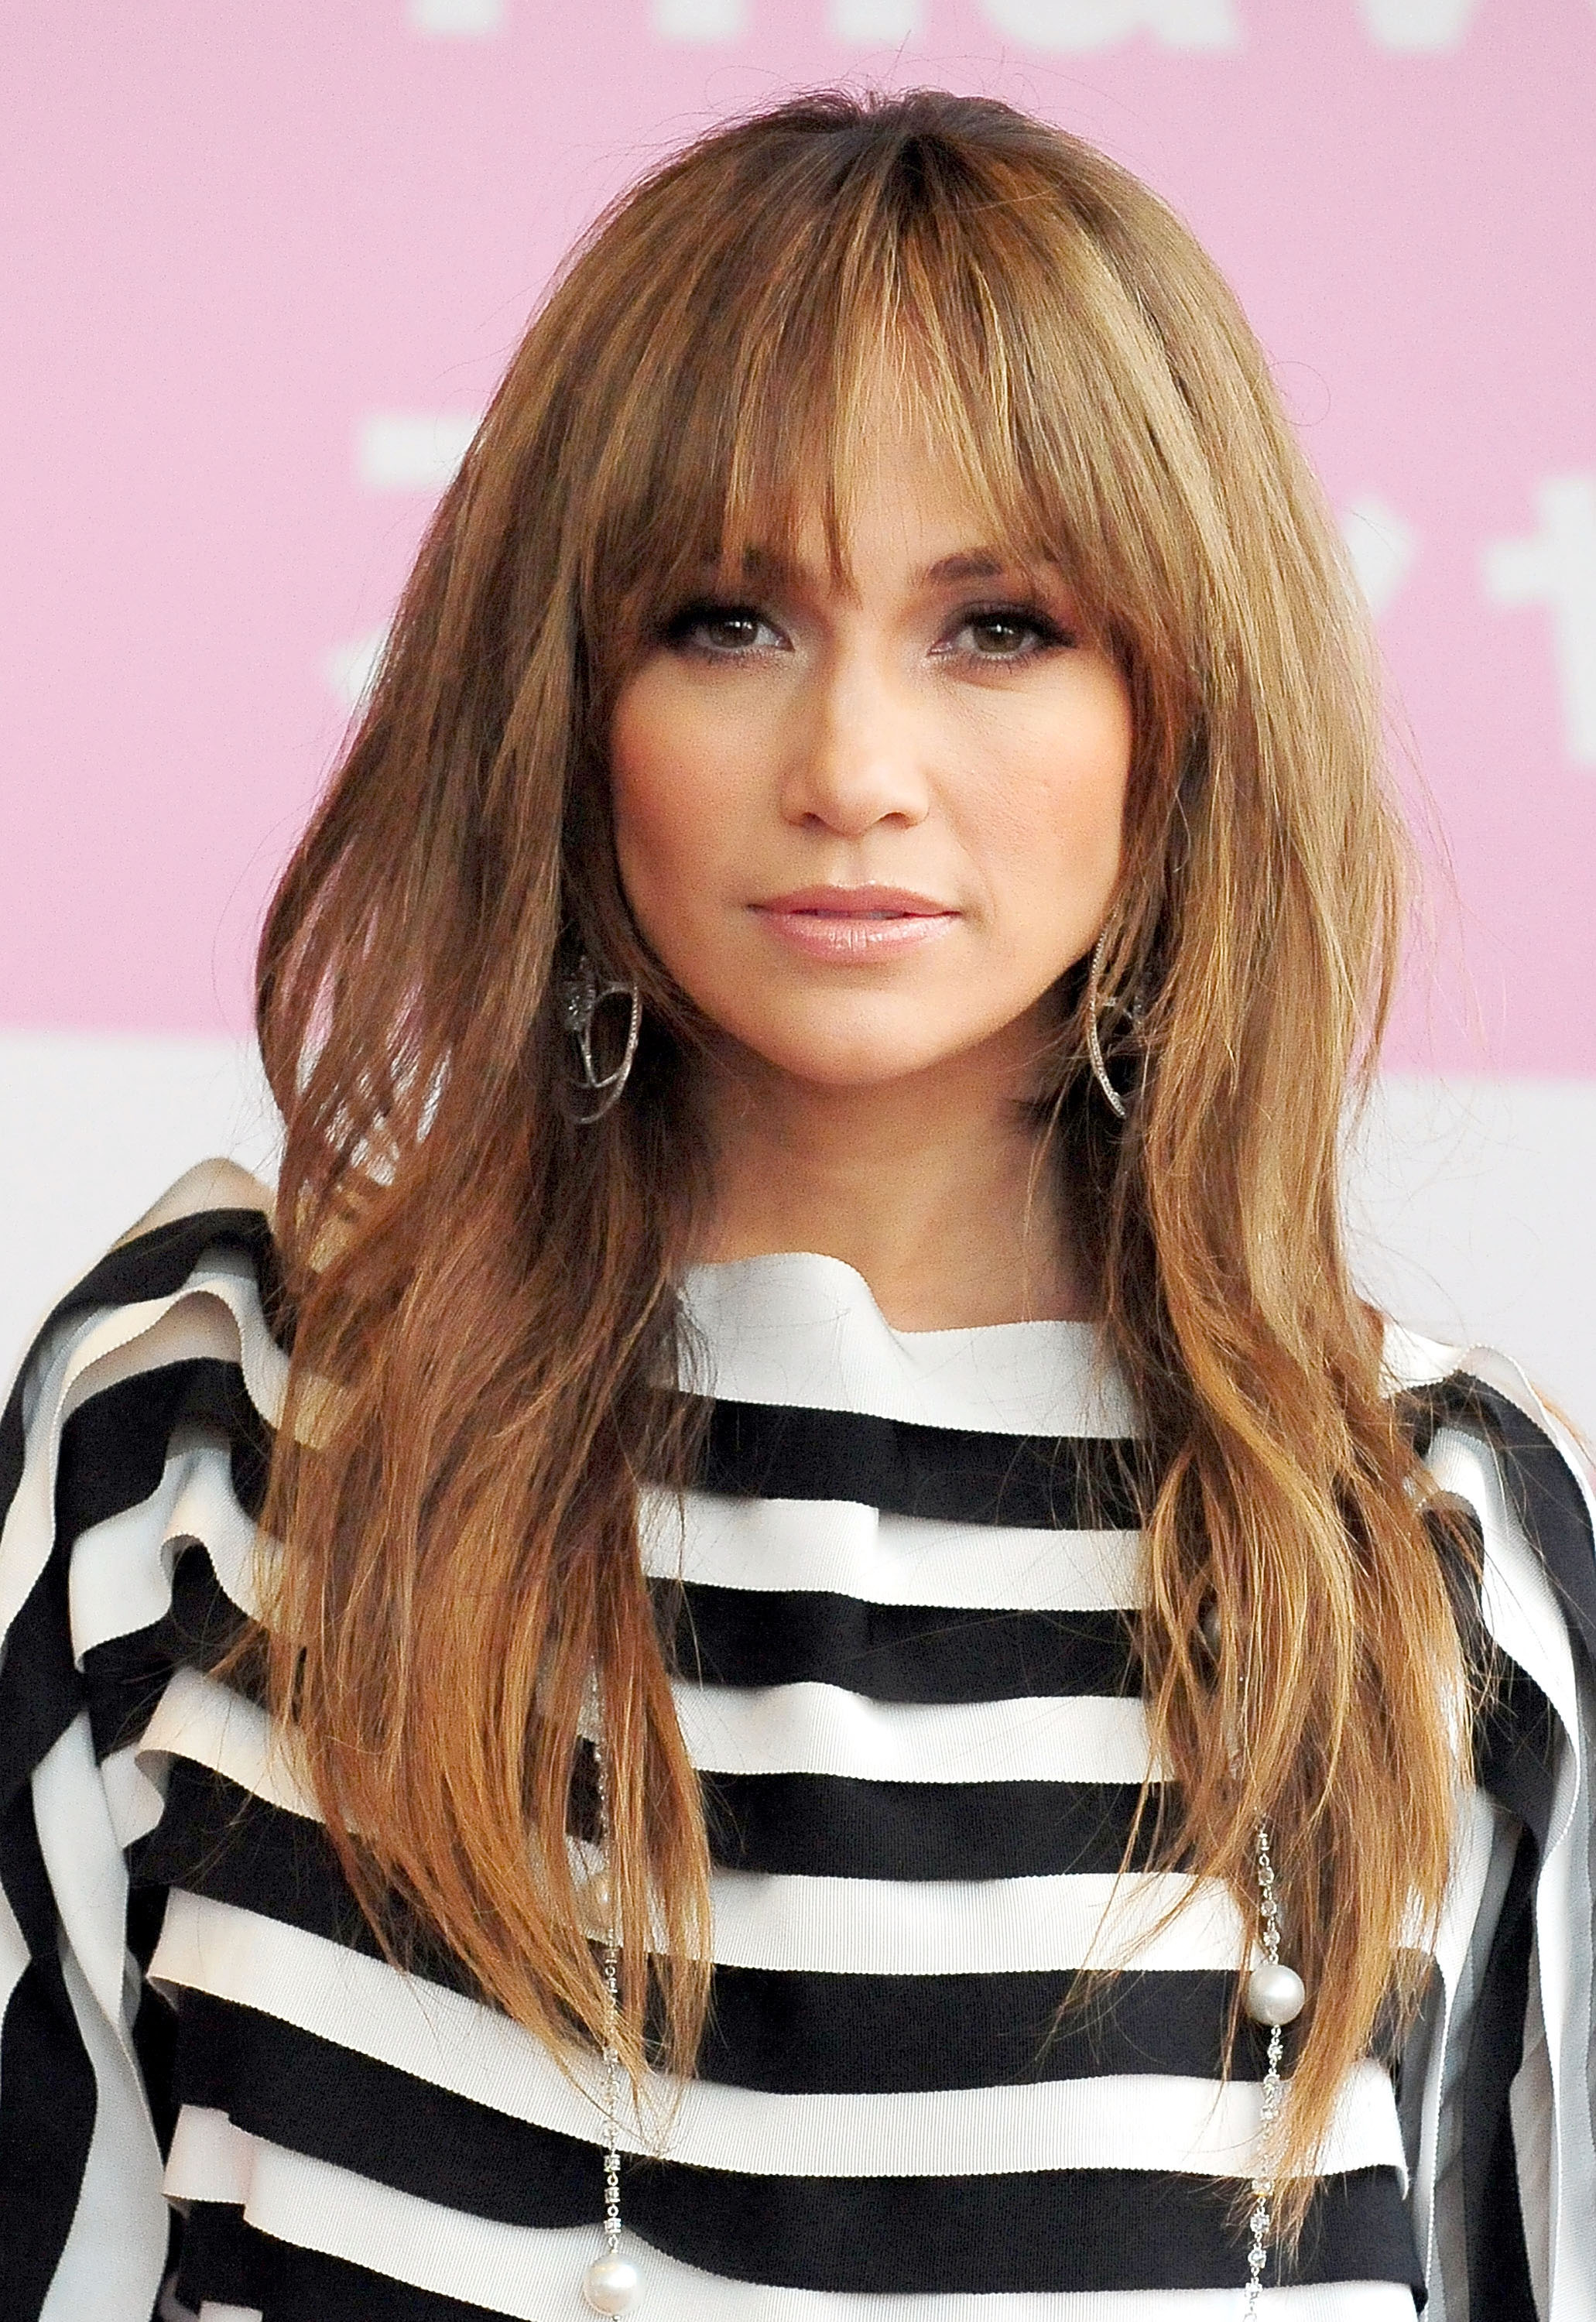 Miraculous 25 Hairstyles With Bangs Photos Of Celebrity Haircuts With Bangs Short Hairstyles Gunalazisus